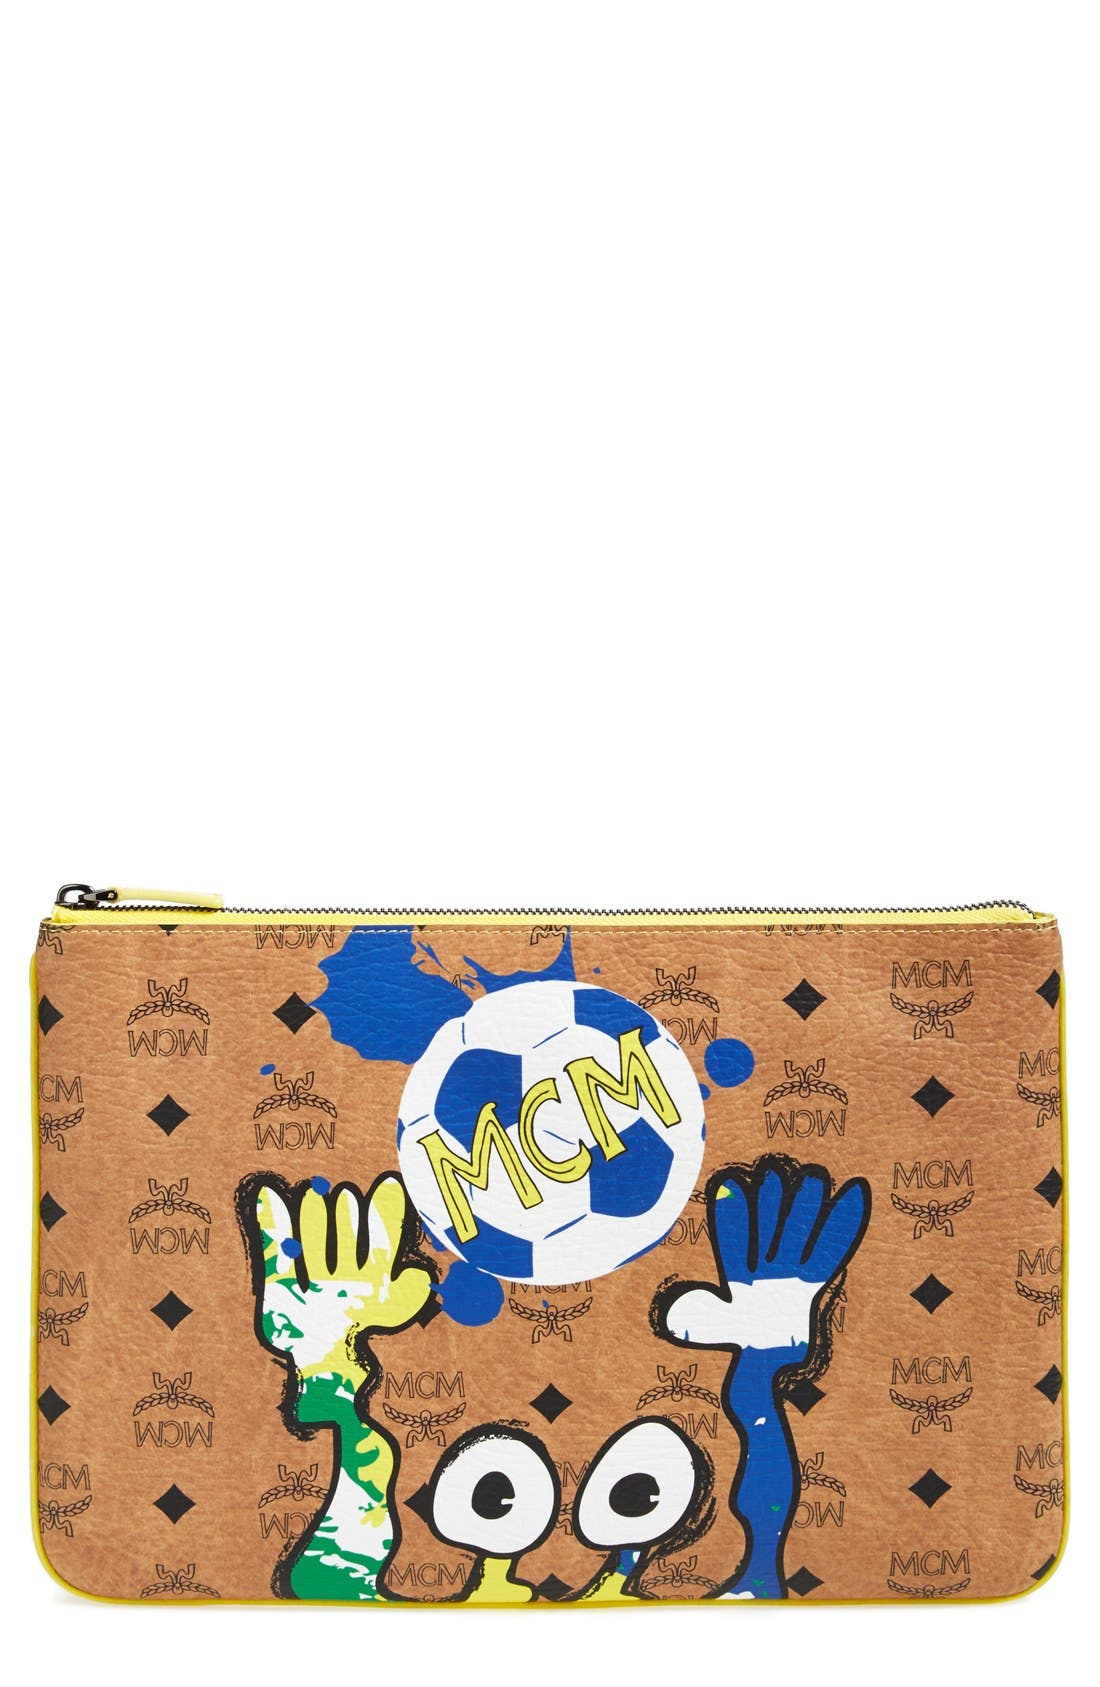 Alternate Image 1 Selected - MCM 'World Soccer' Zip Top Pouch